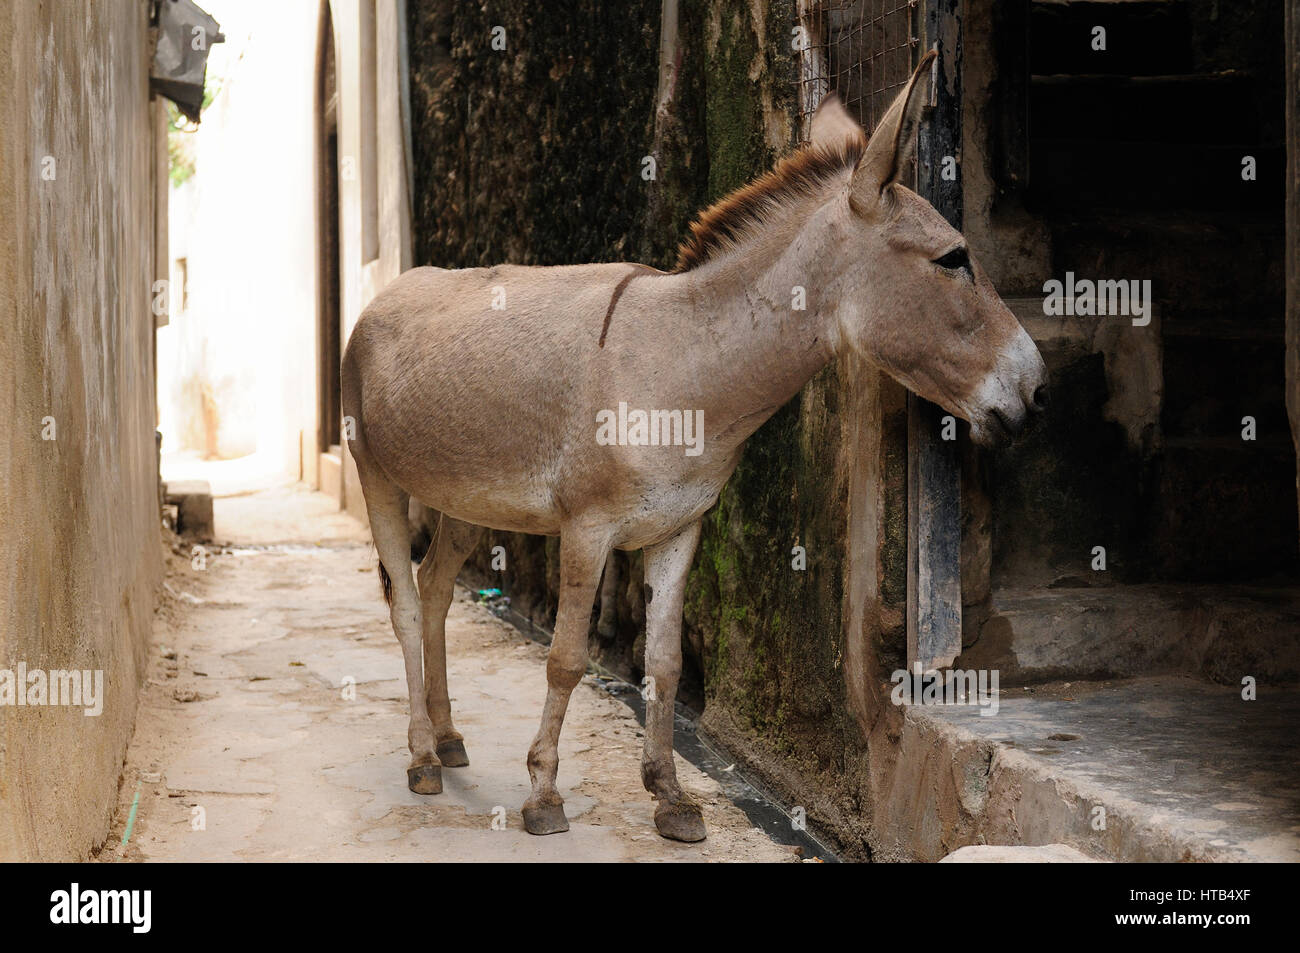 Donkey being used for a transportation of goods on the Lamu archipelago standing by the wall of the house in the Stock Photo